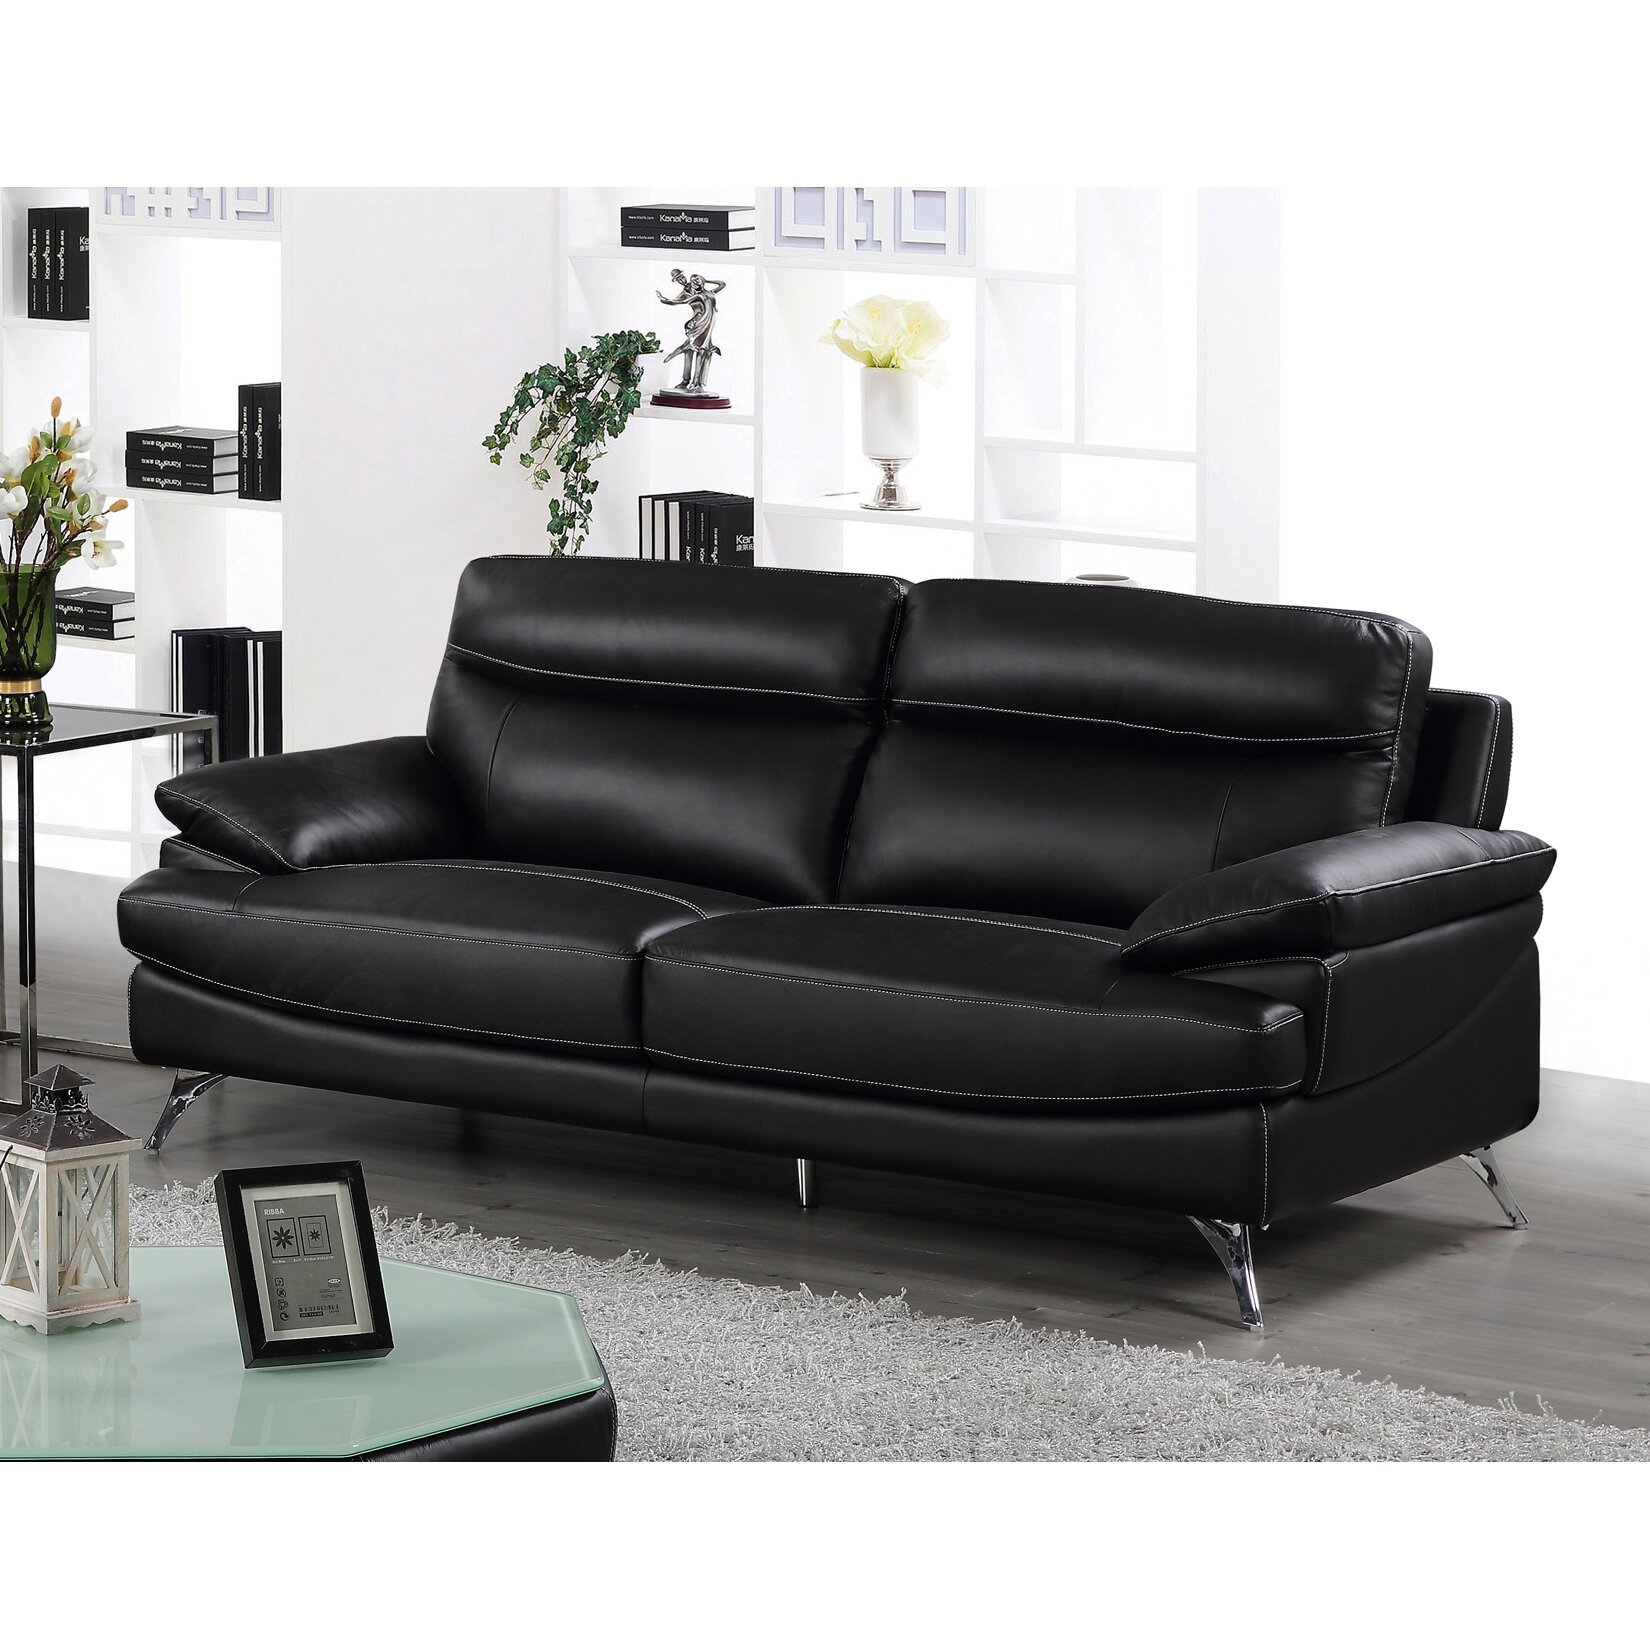 Good Quality Leather Sofa: Best Quality Furniture Leather Sofa